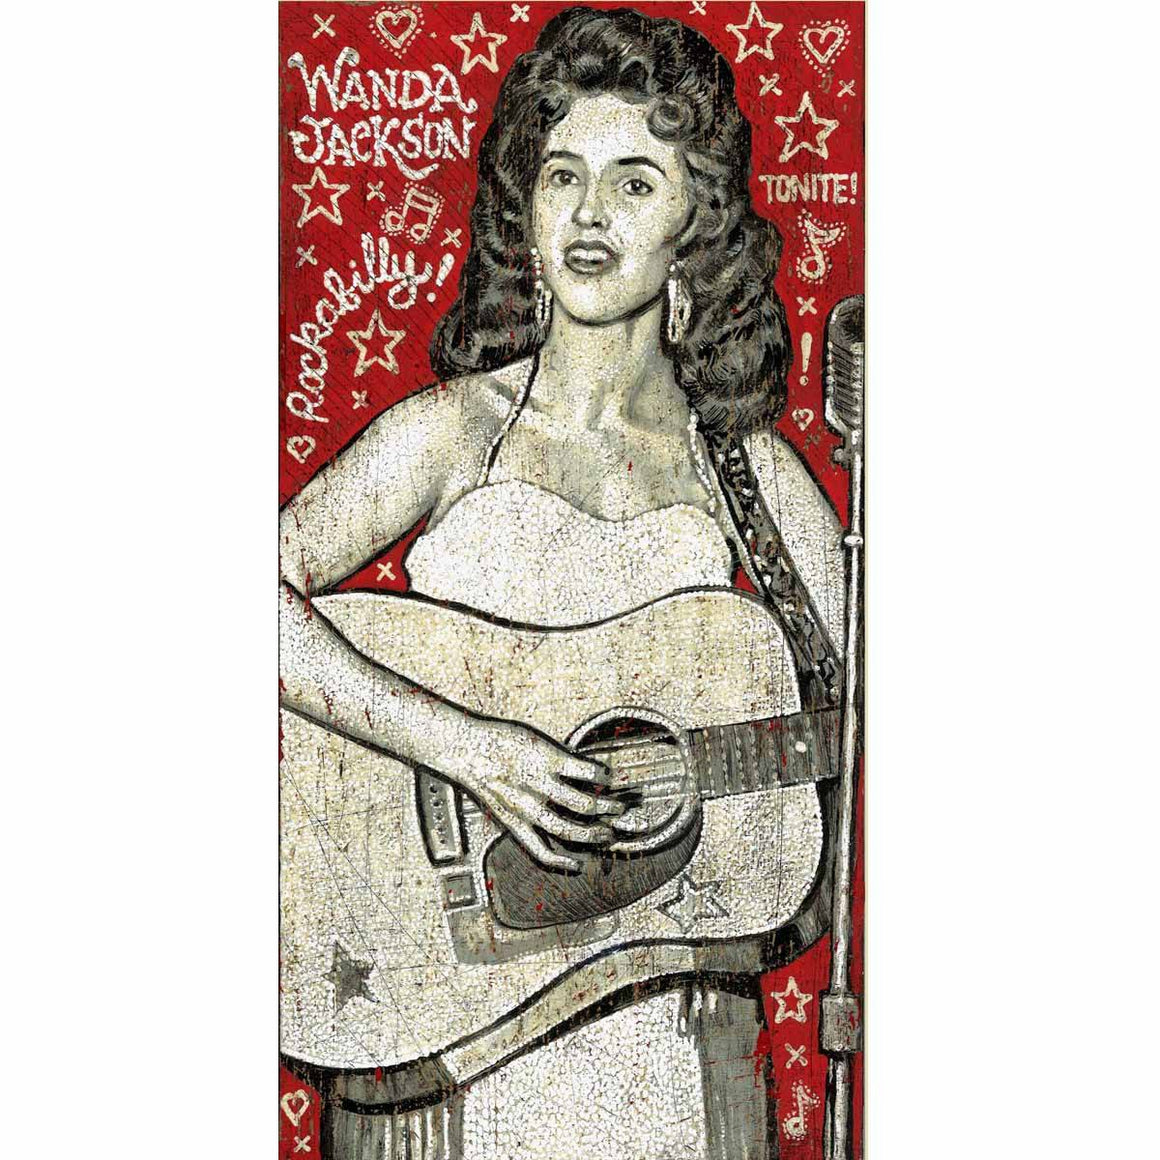 Wanda Jackson - Jon Langford - Yard Dog Art